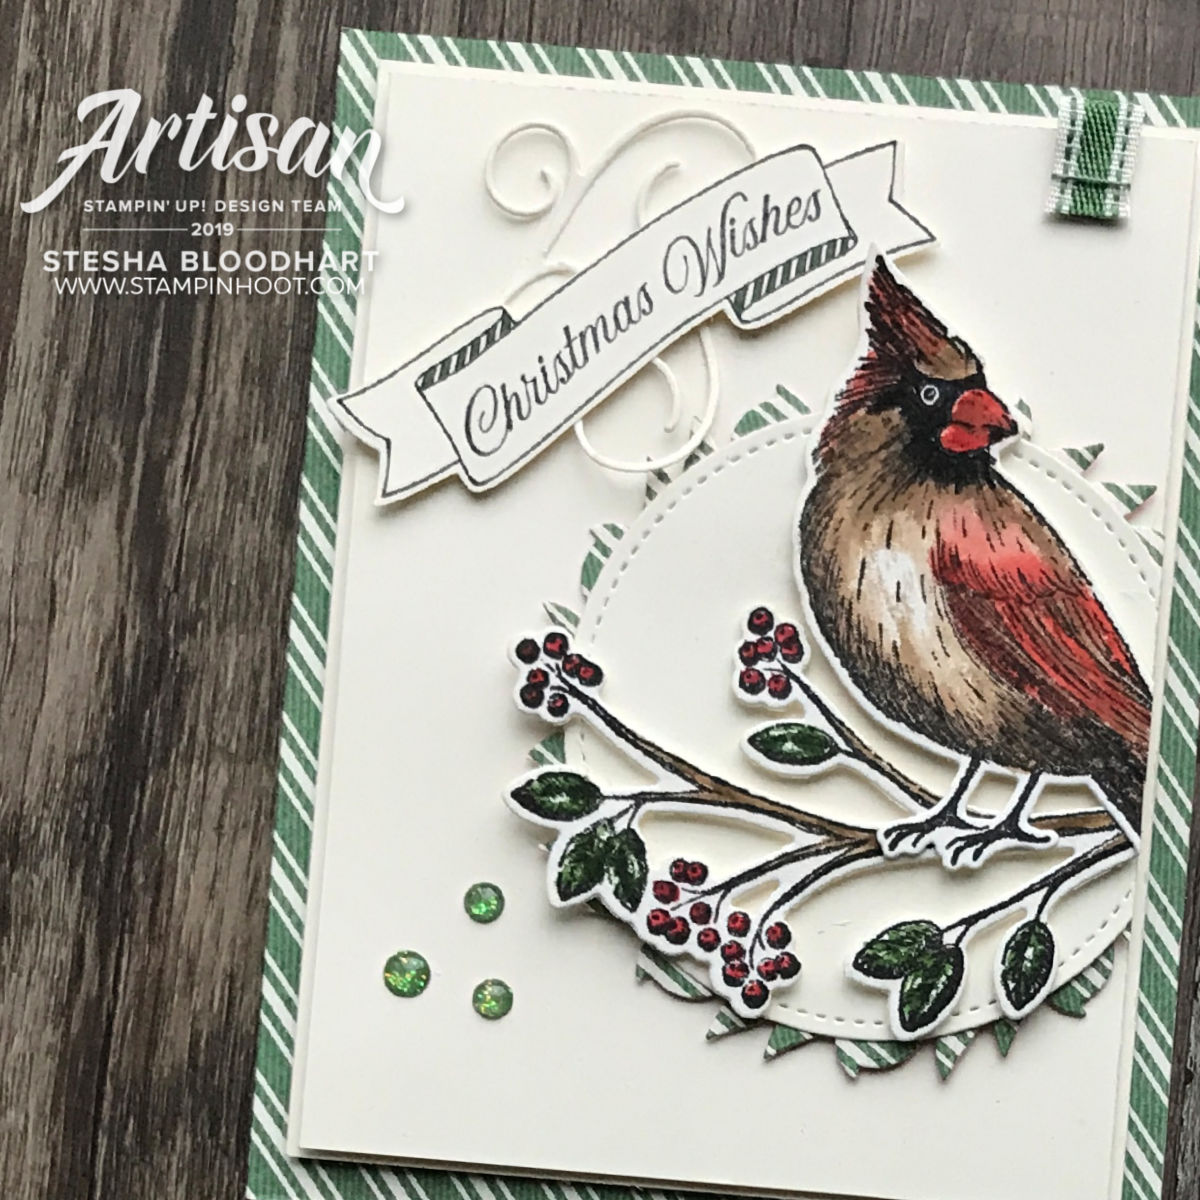 Toile Tidings Product Suite from Stampin' Up! 2019 Holiday Catalog_Cards by Stesha Bloodhart, Stampin' Hoot!